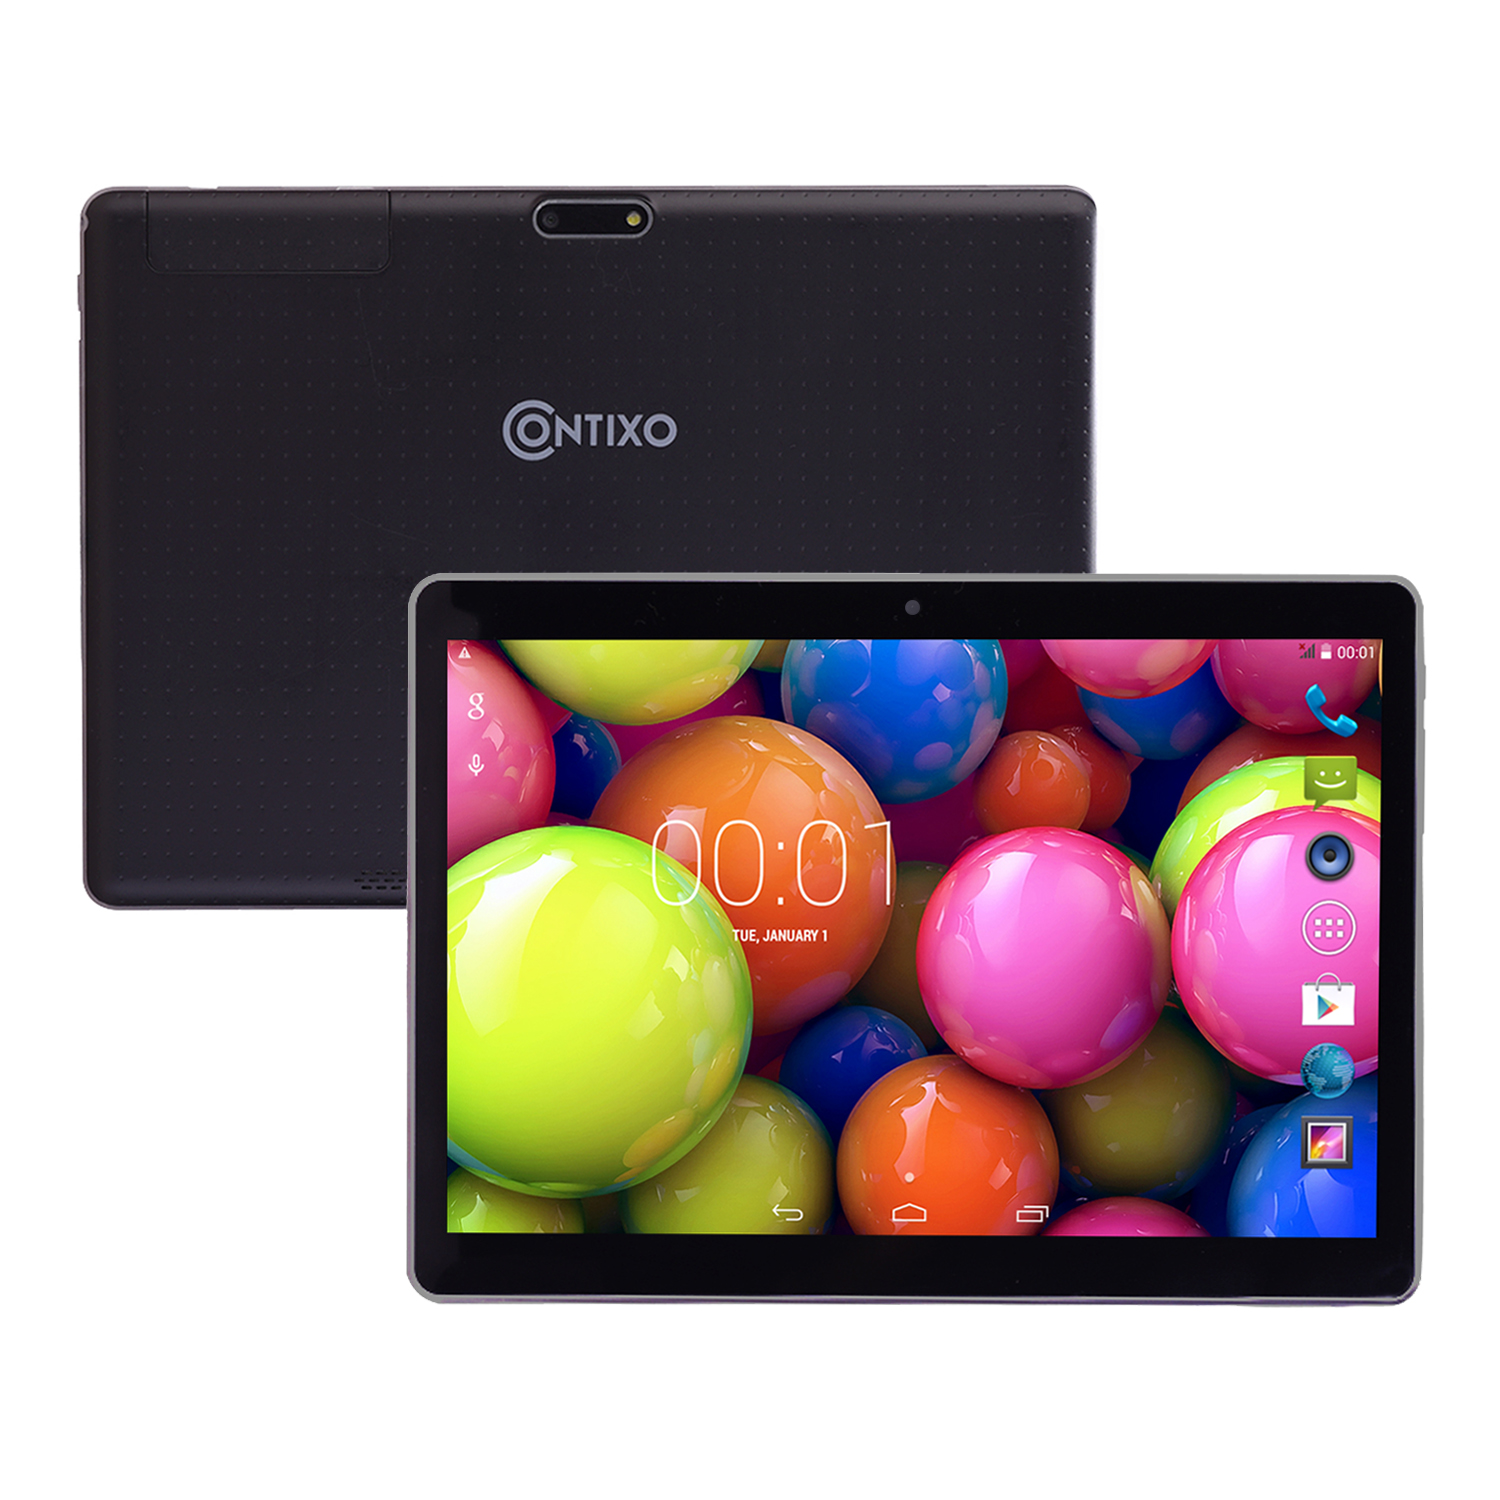 Contixo M96 Quad Core Android 4.4 Tablet, IPS 1280x800 Di...